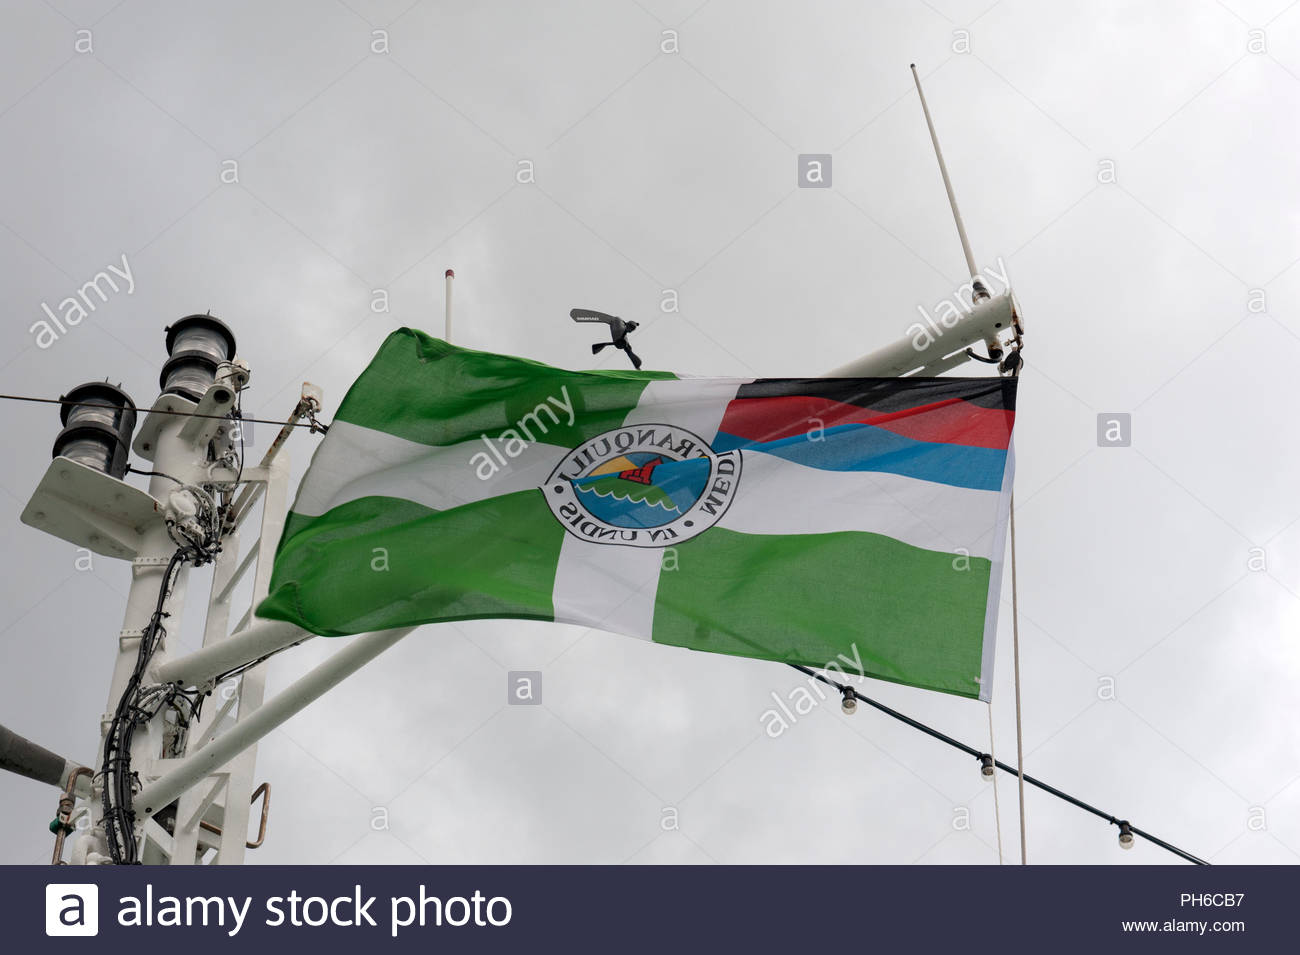 Borkum Germany Borkumer flag on ship flying in stormy winds. Stock Photo